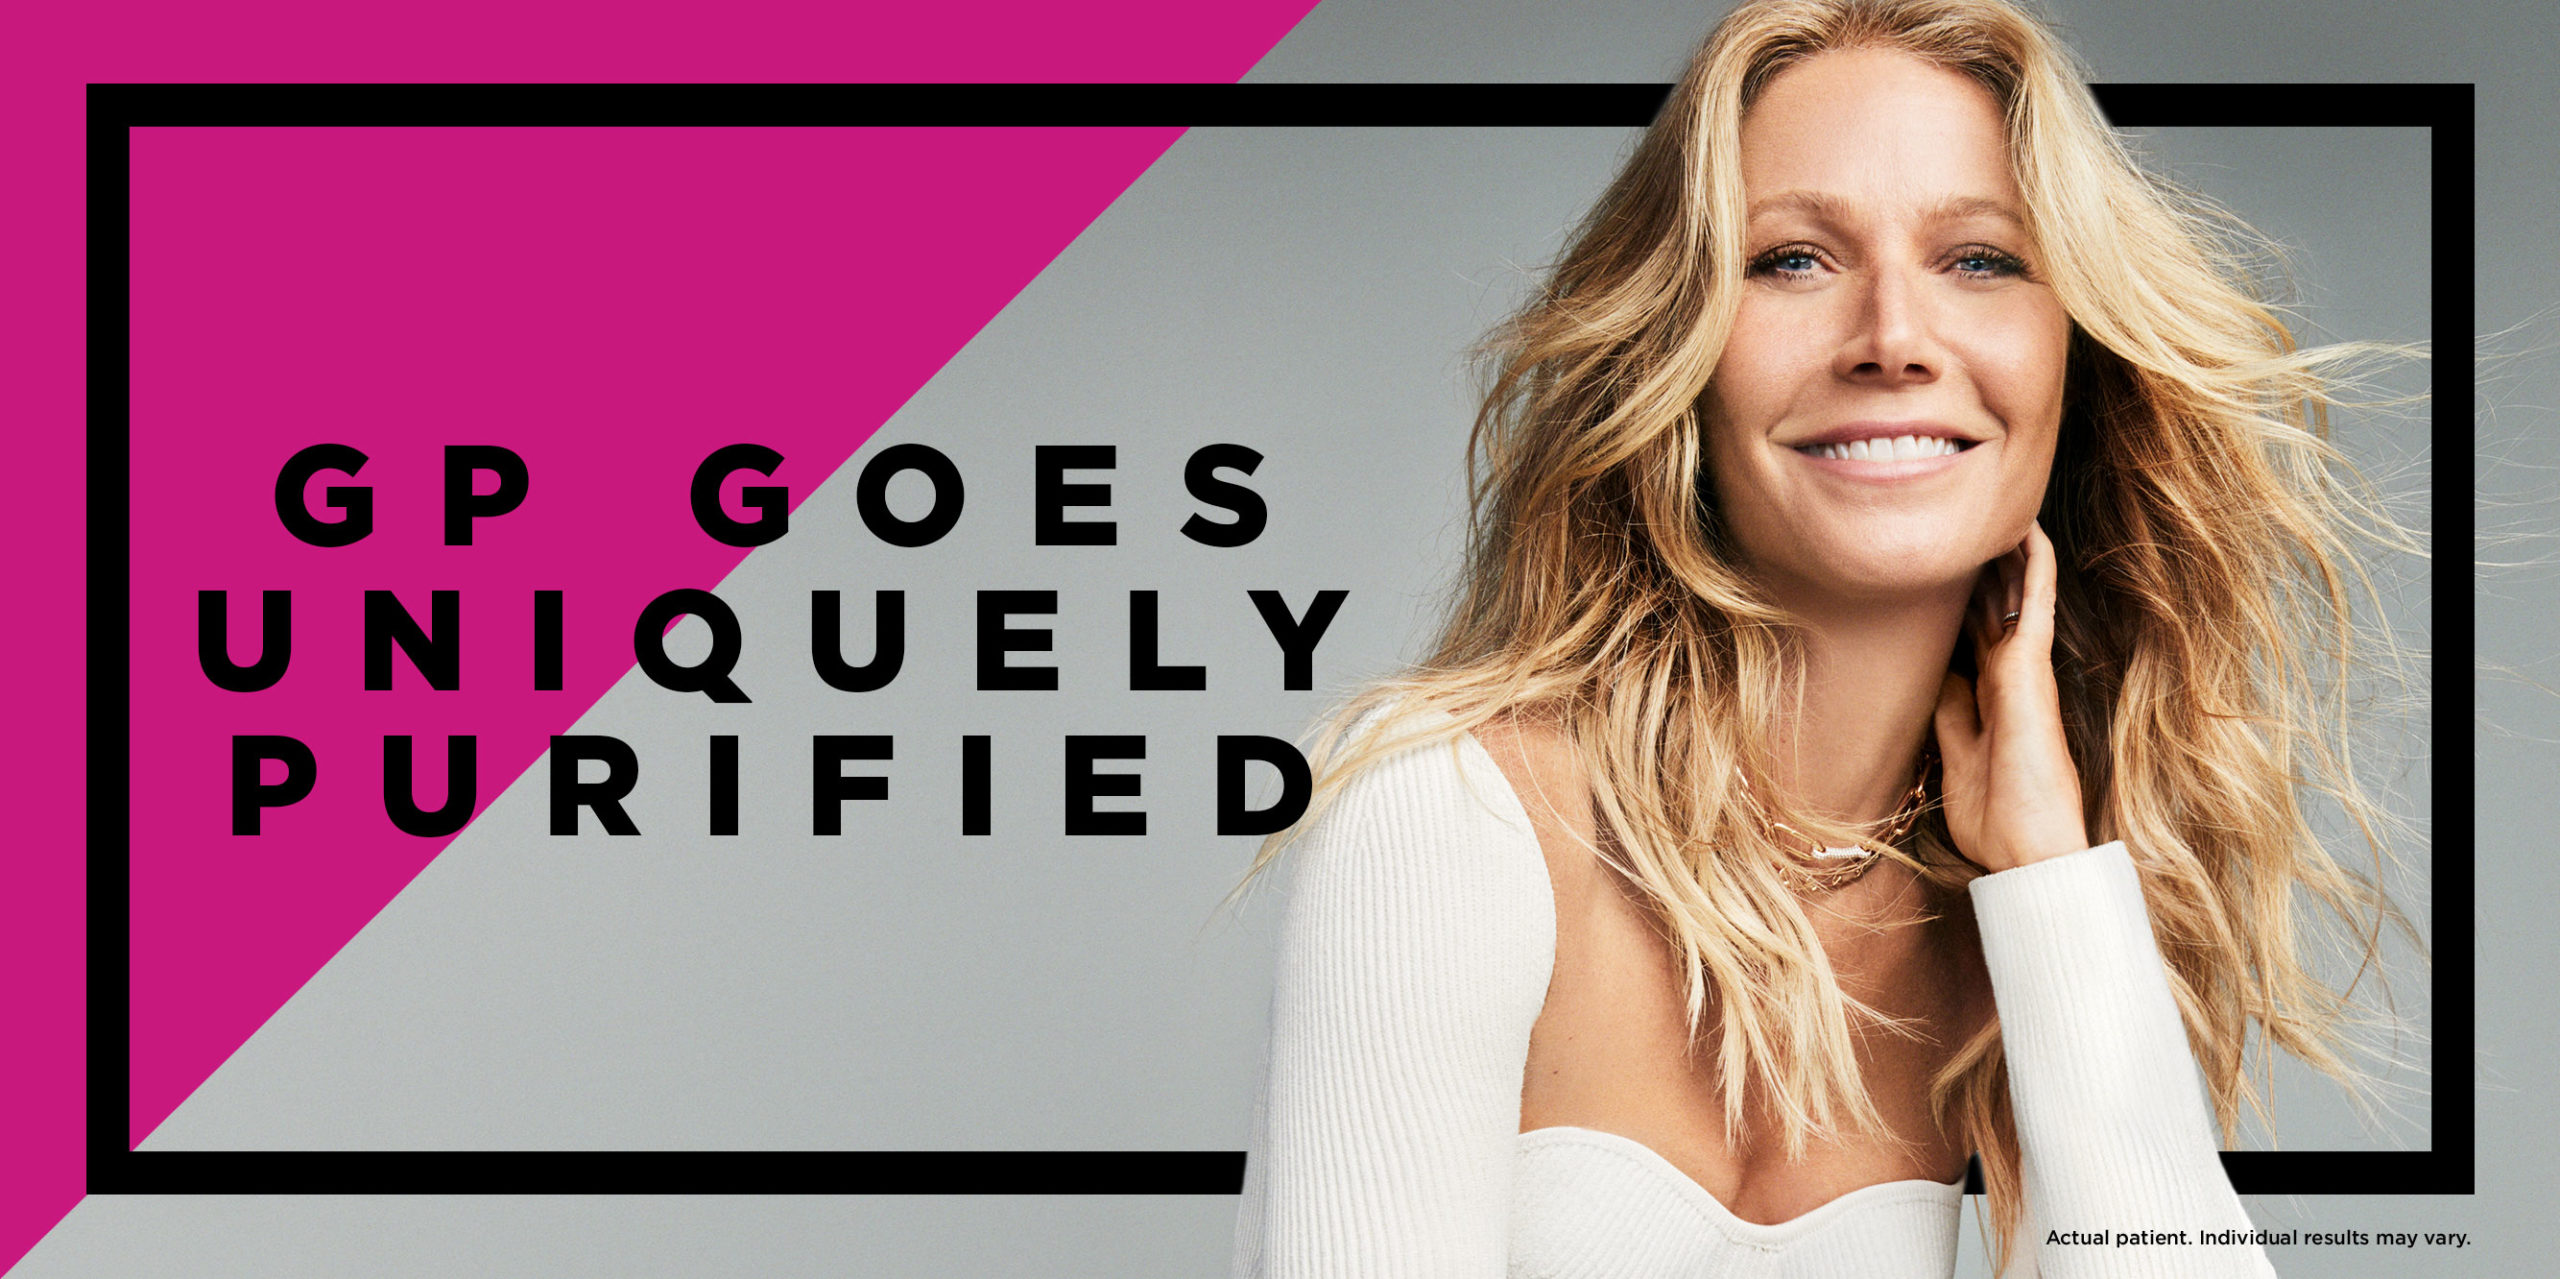 Gwyneth Paltrow Goes Uniquely Purified